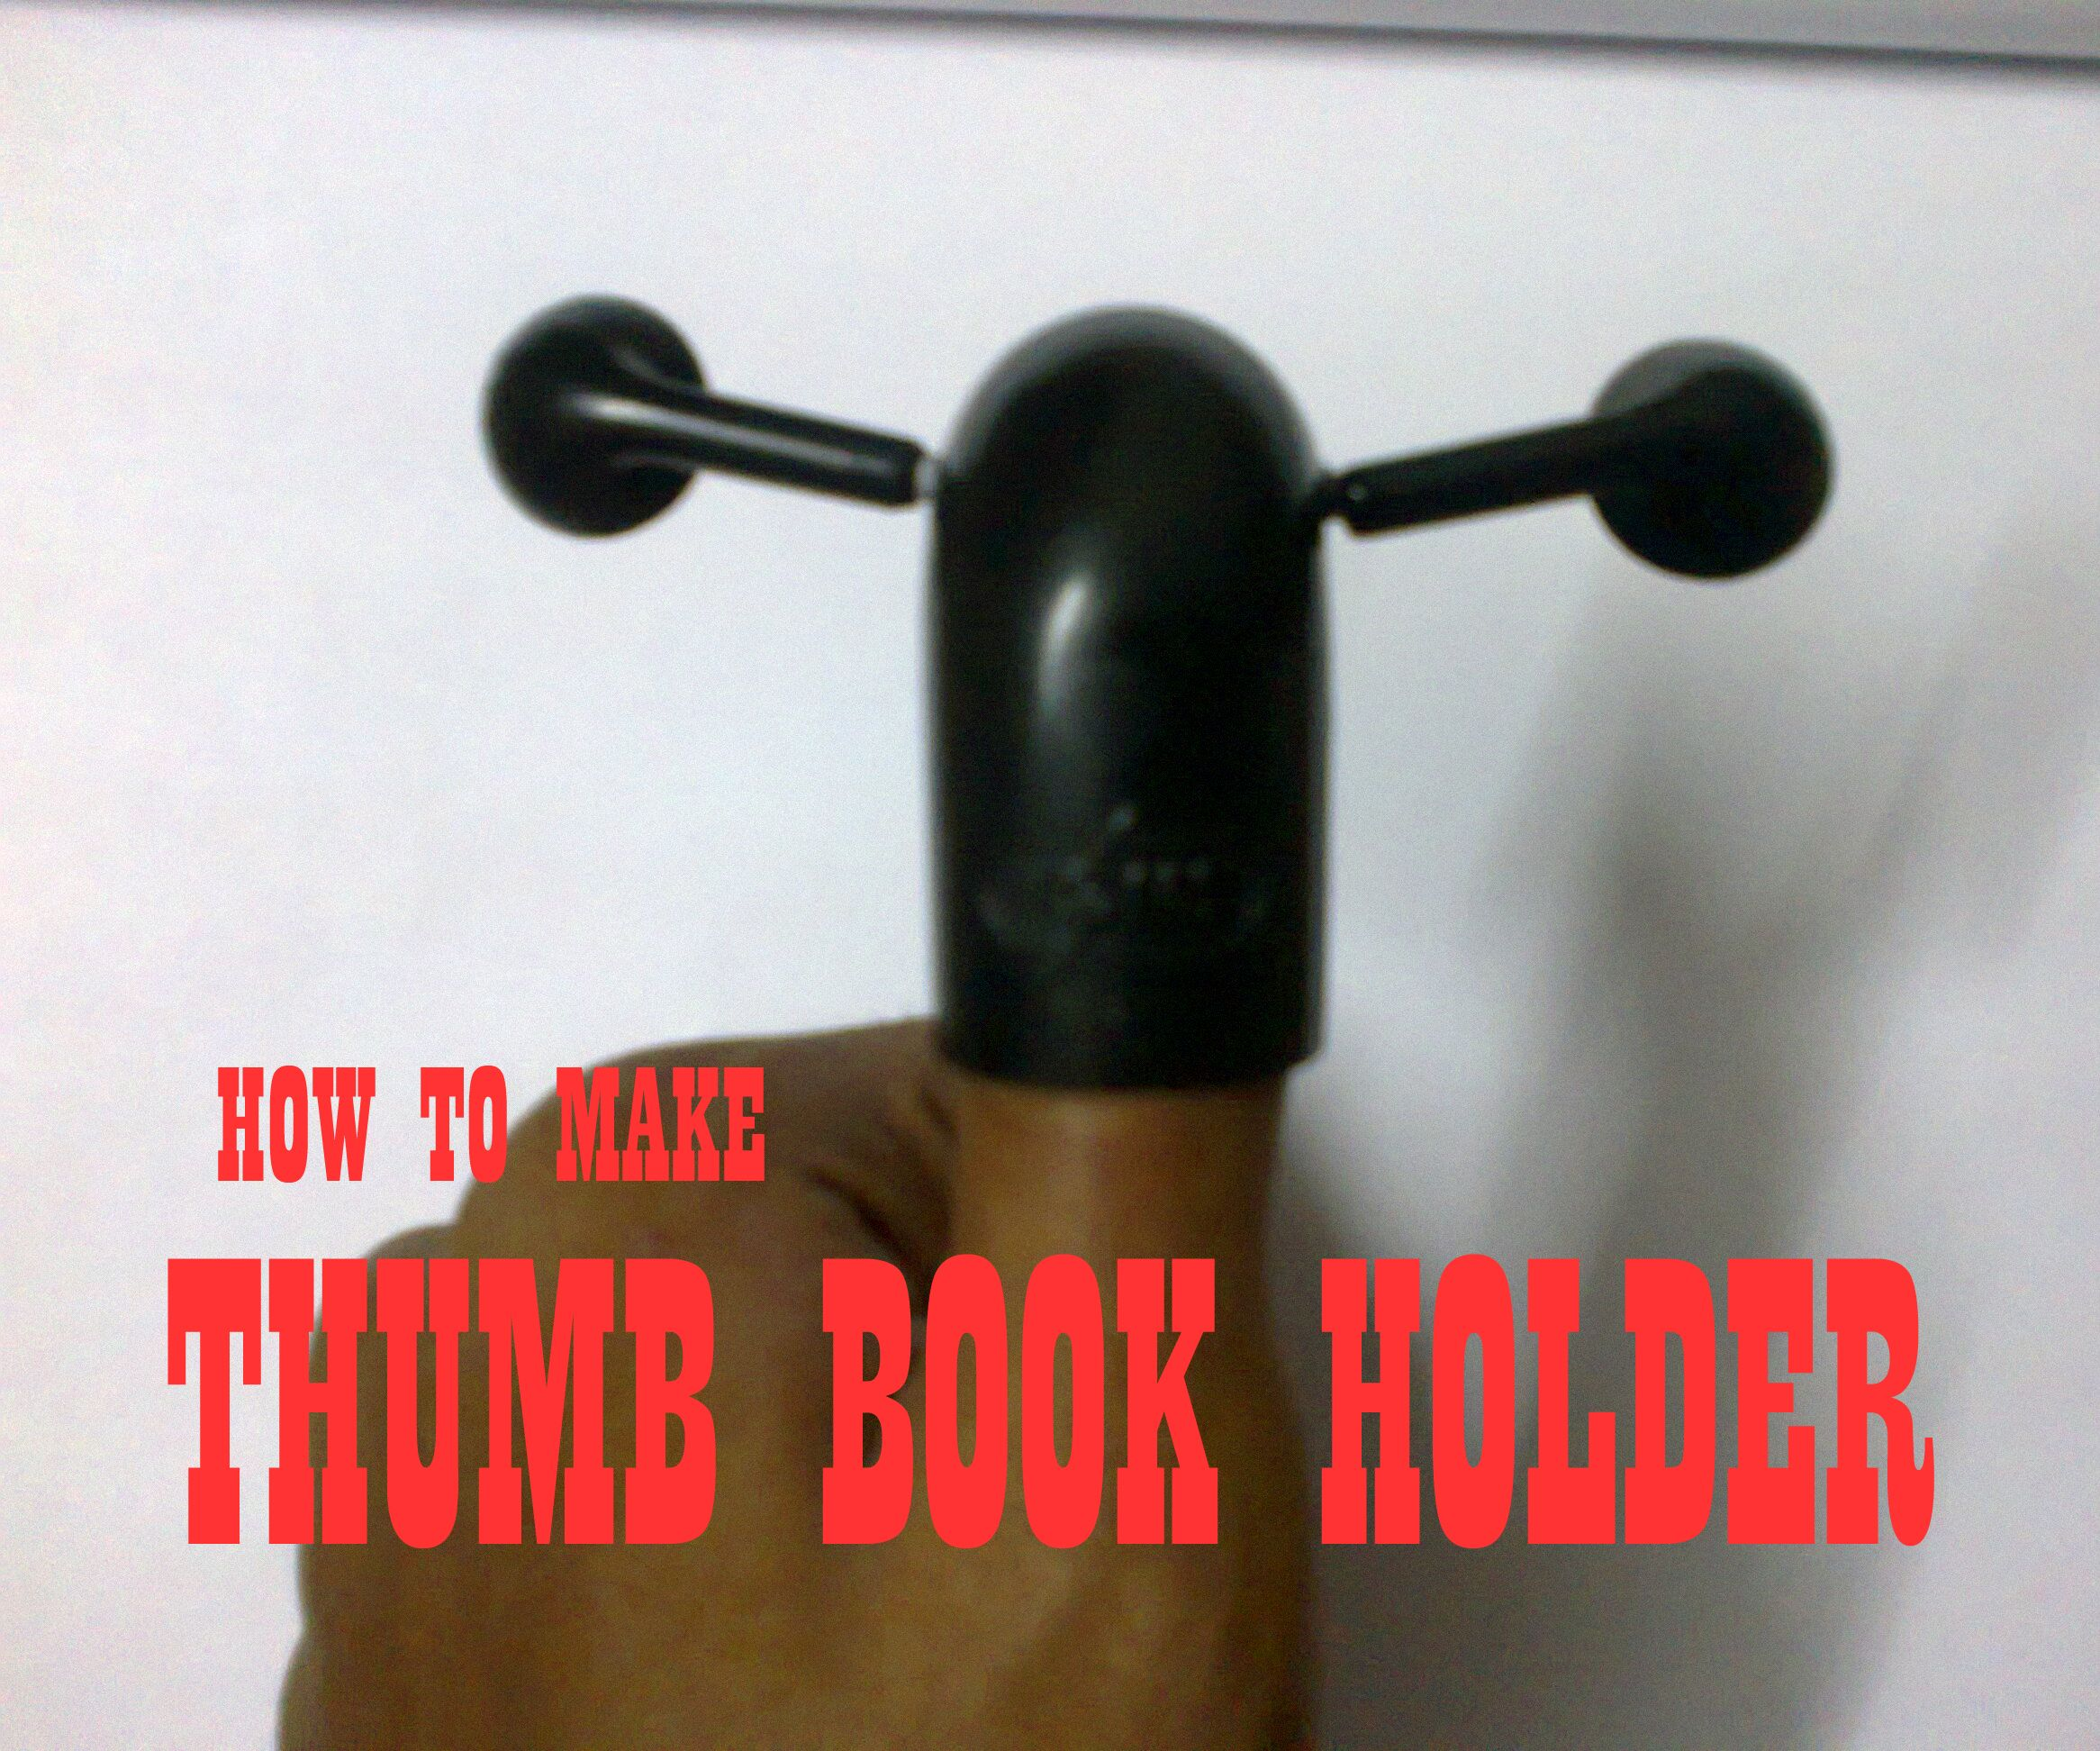 HOW TO MAKE THUMB BOOK HOLDER